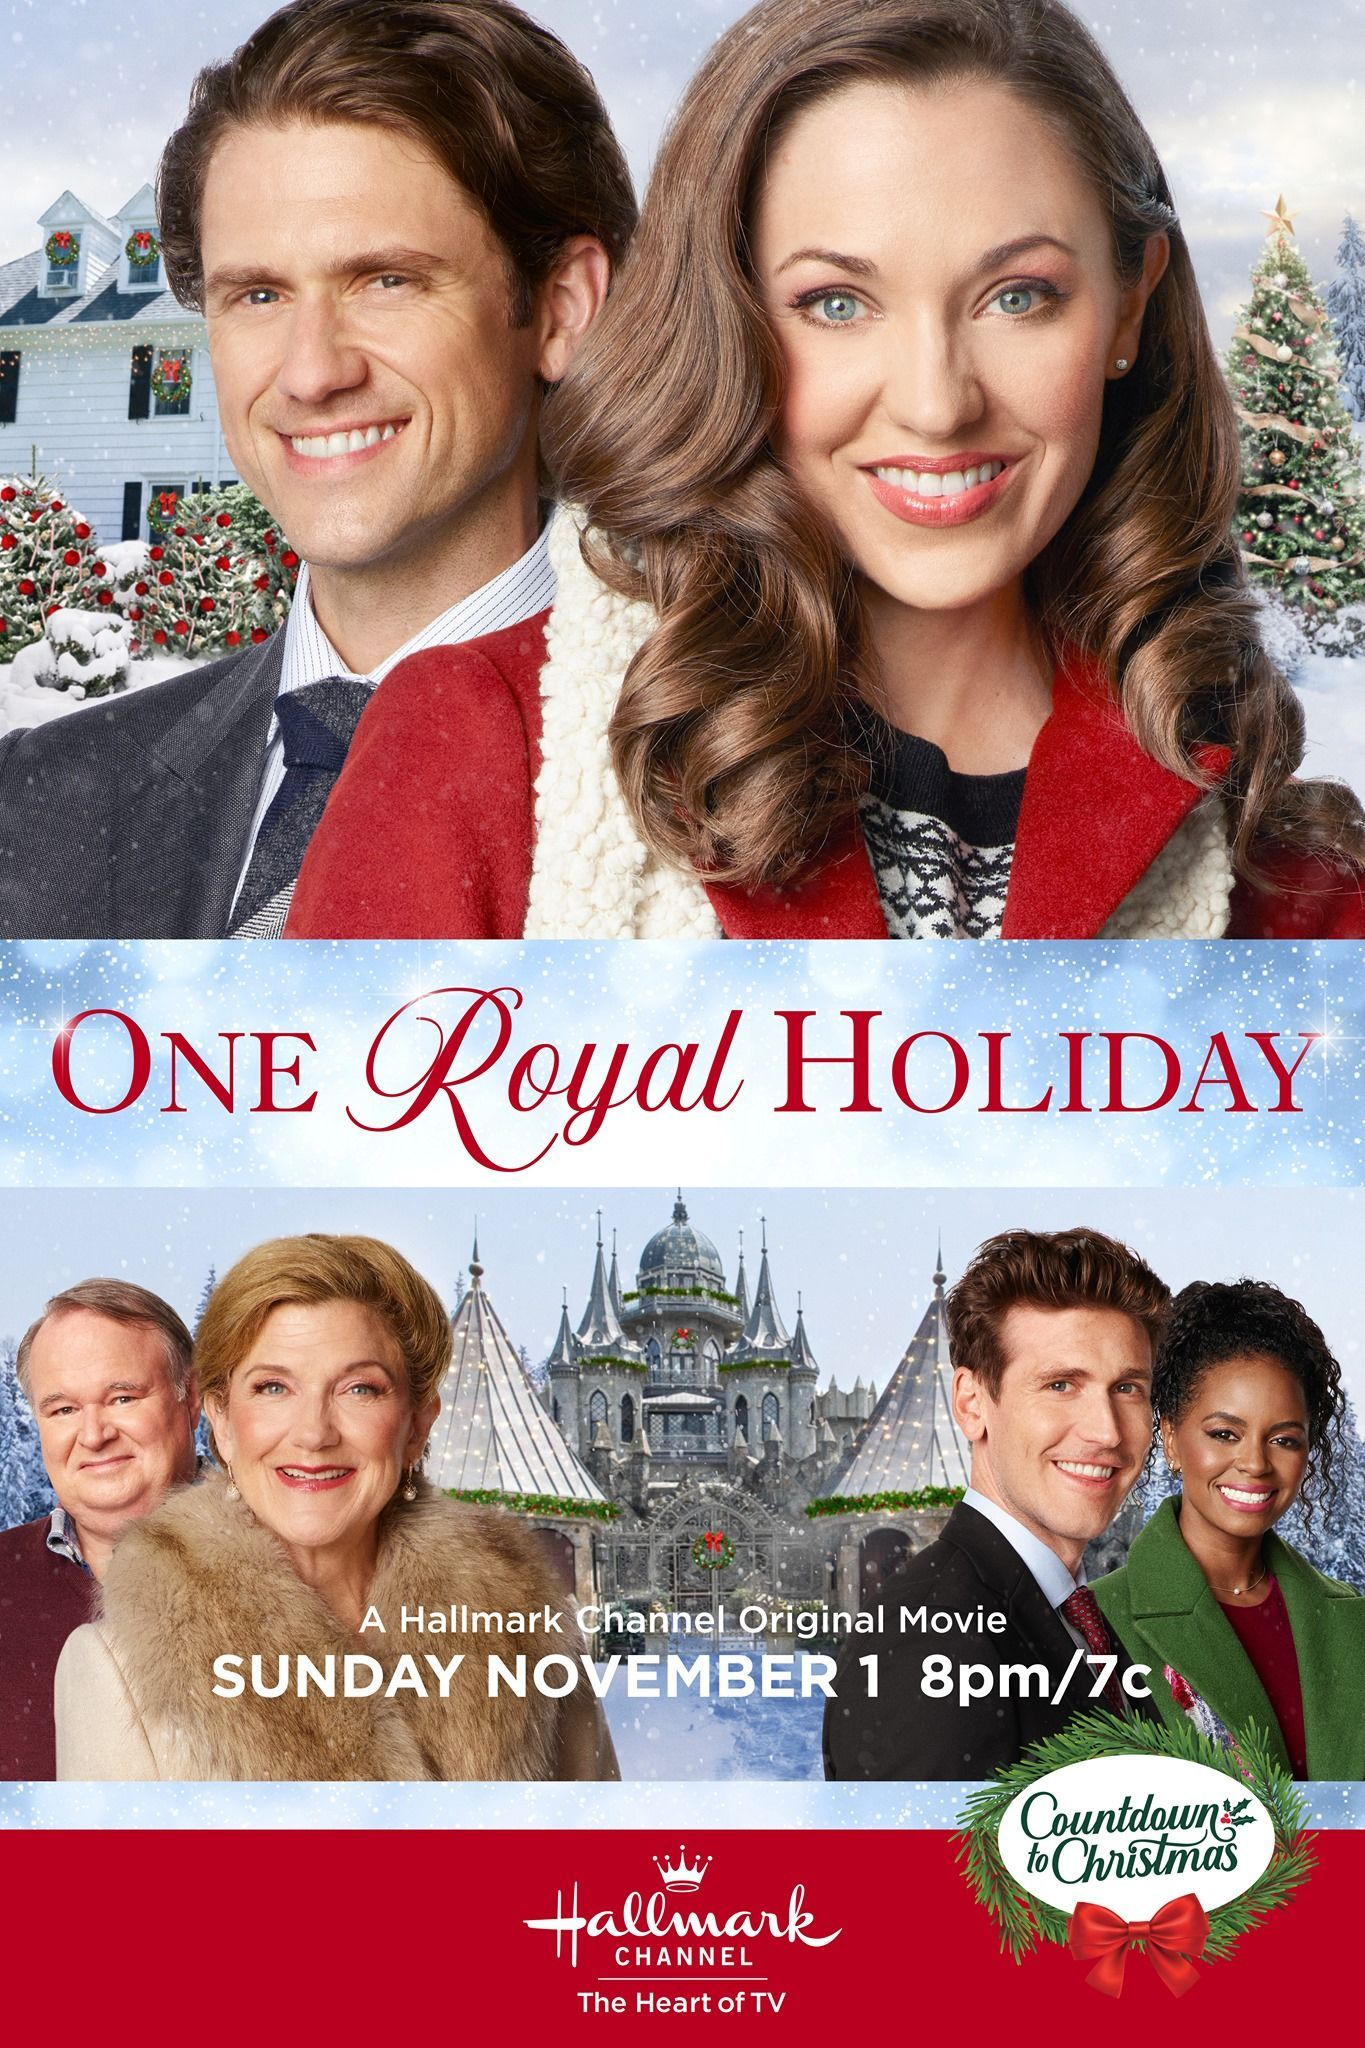 Mark Your Calendars For The All New Hallmark Channel Original Premiere Of One Royal Holiday In 2020 Hallmark Channel Christmas Movies Hallmark Christmas Movies Movies